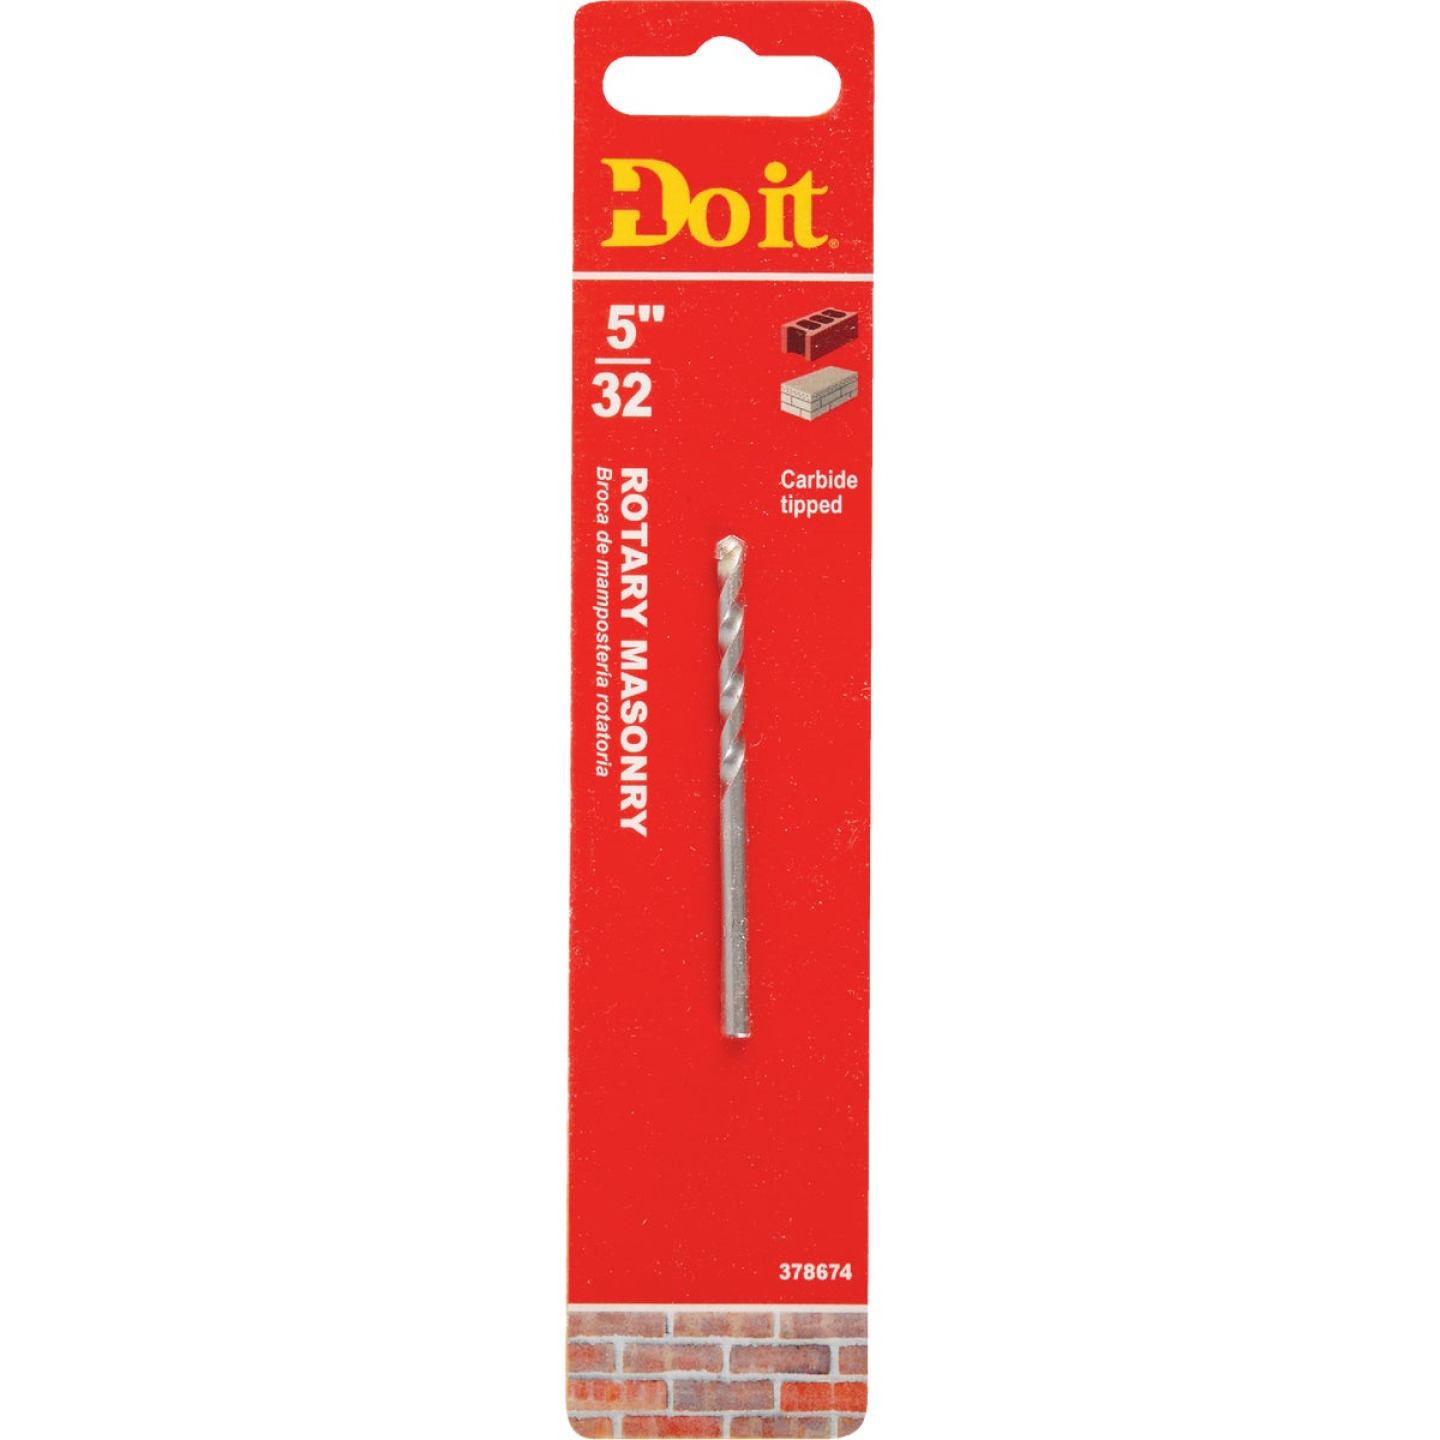 Do it 5/32 In. x 4-1/2 In. Rotary Masonry Drill Bit Image 1